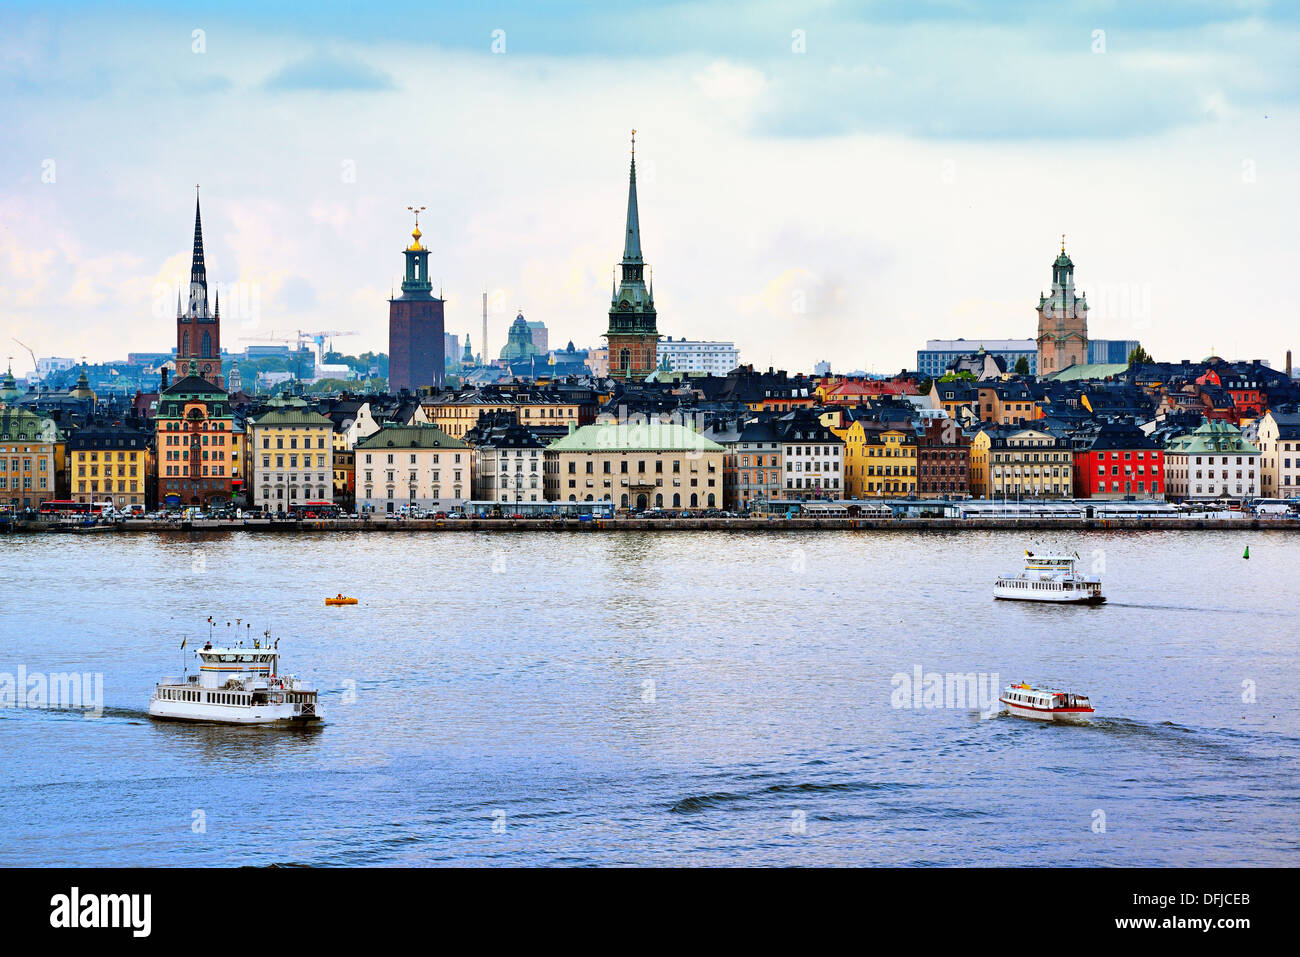 Stockholm, Sweden cityscape from the port. - Stock Image